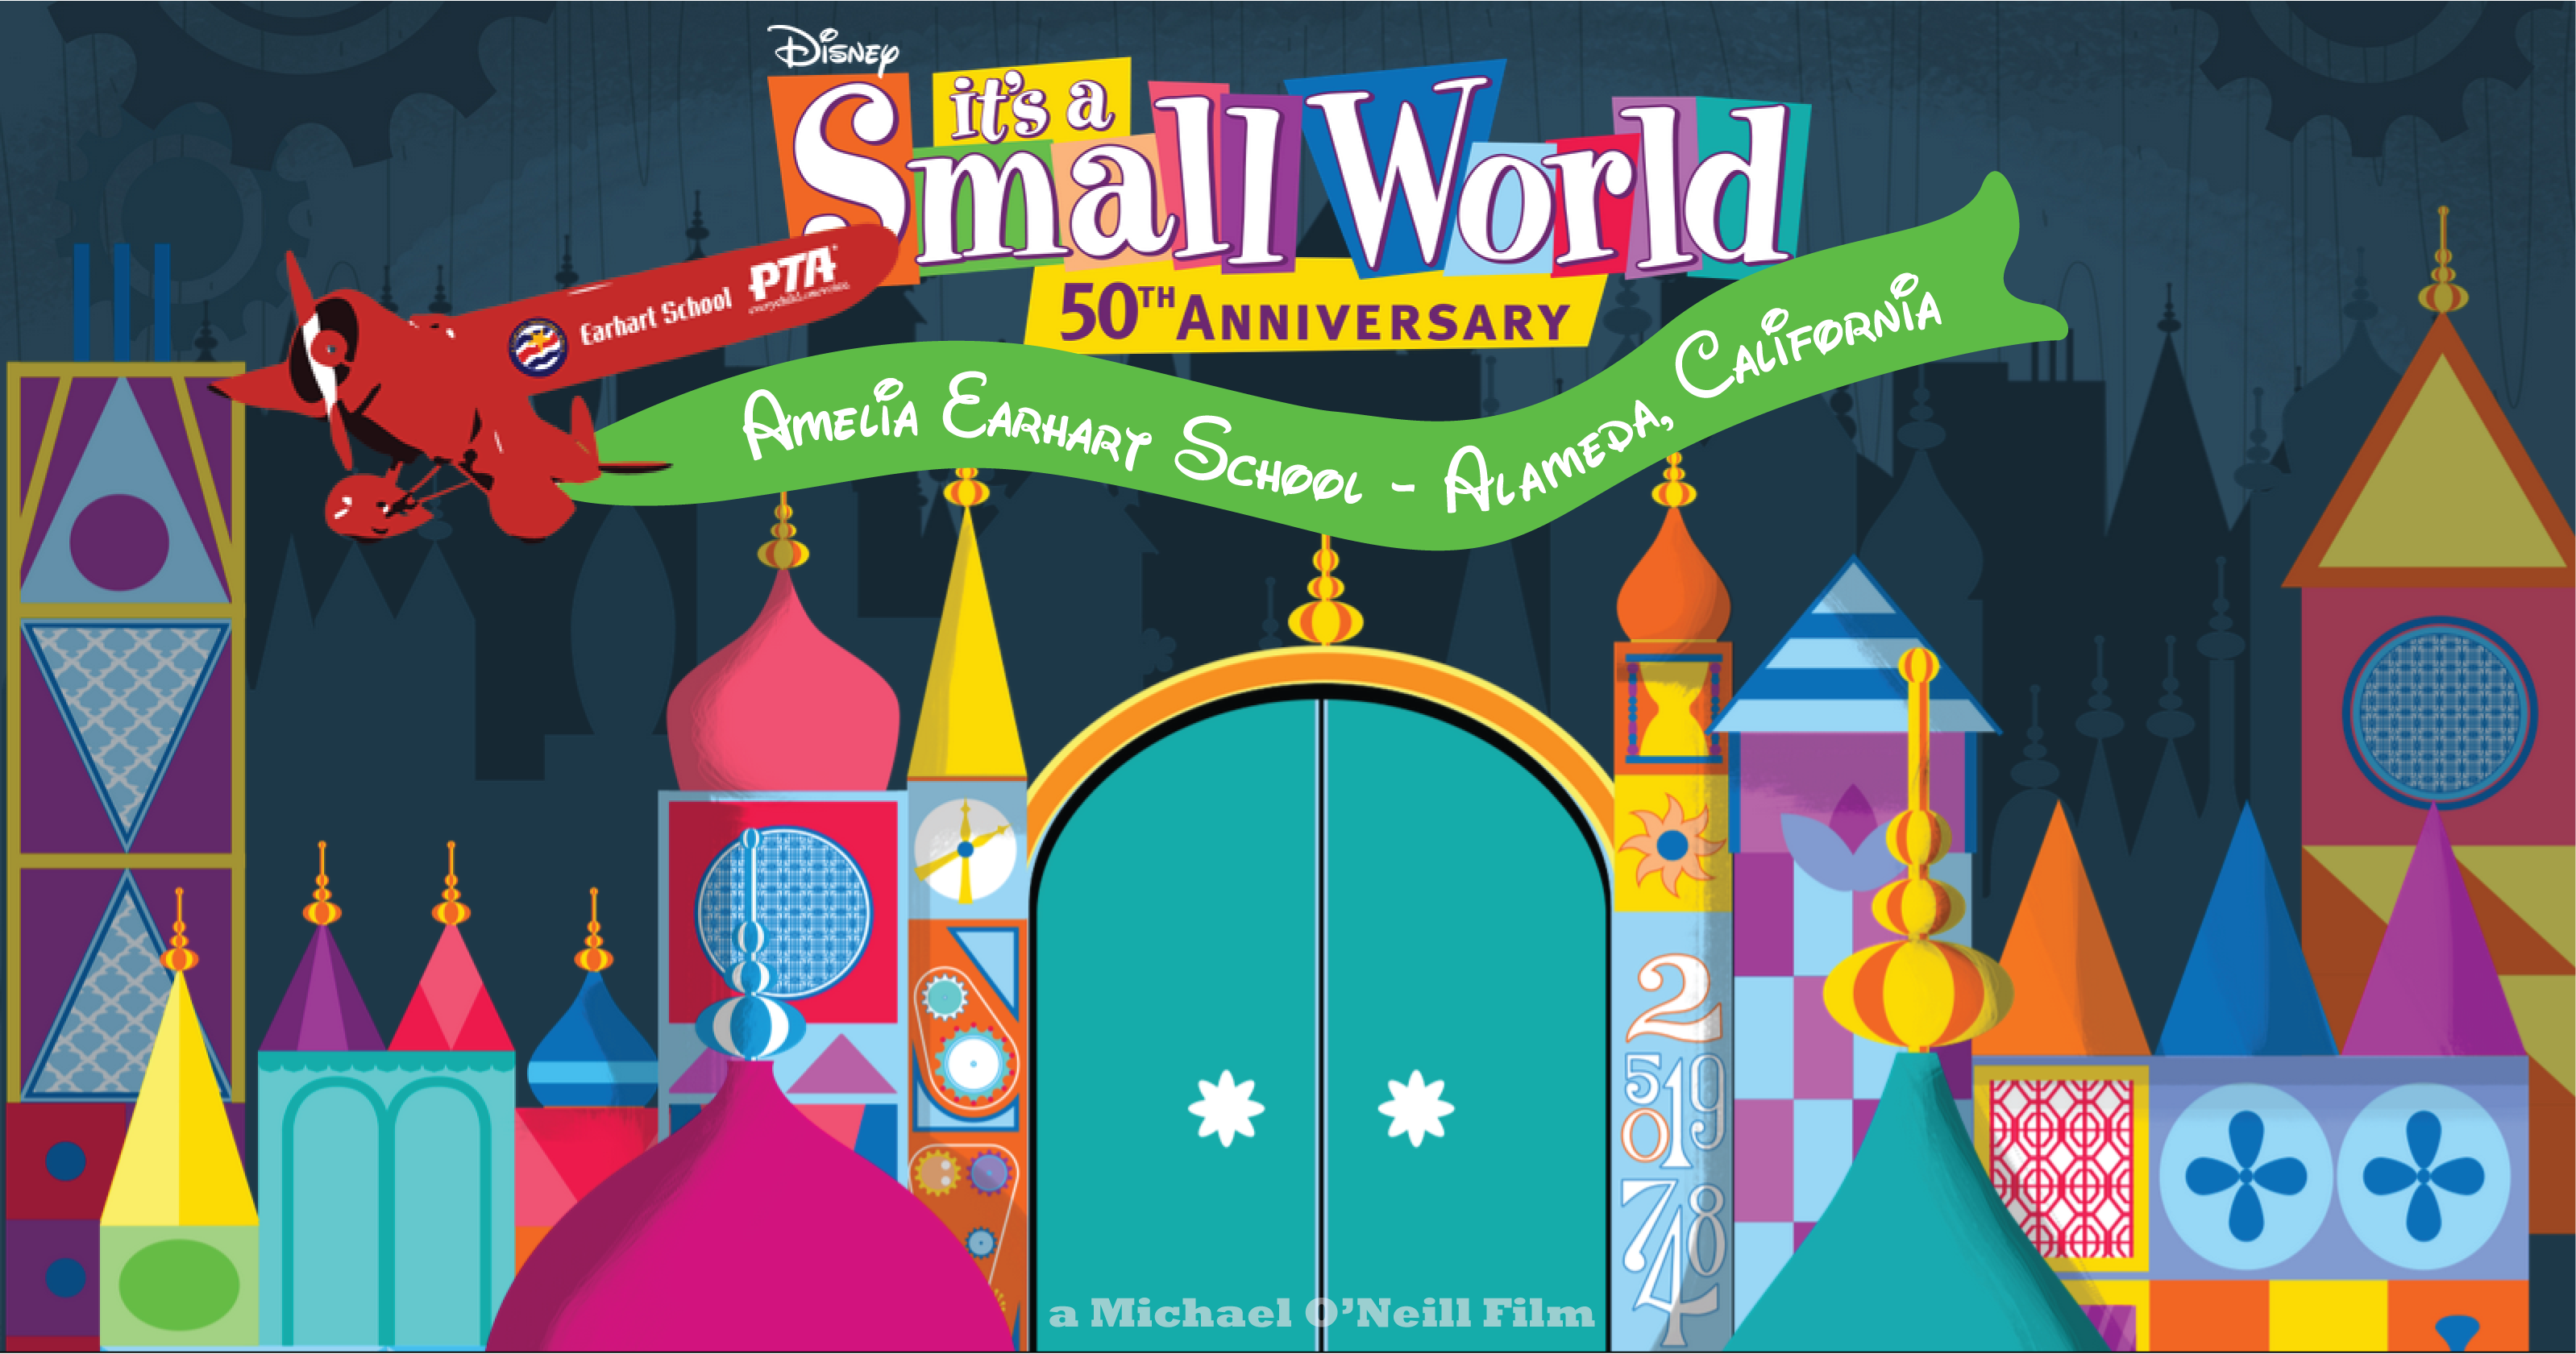 Earhart small world sing-along